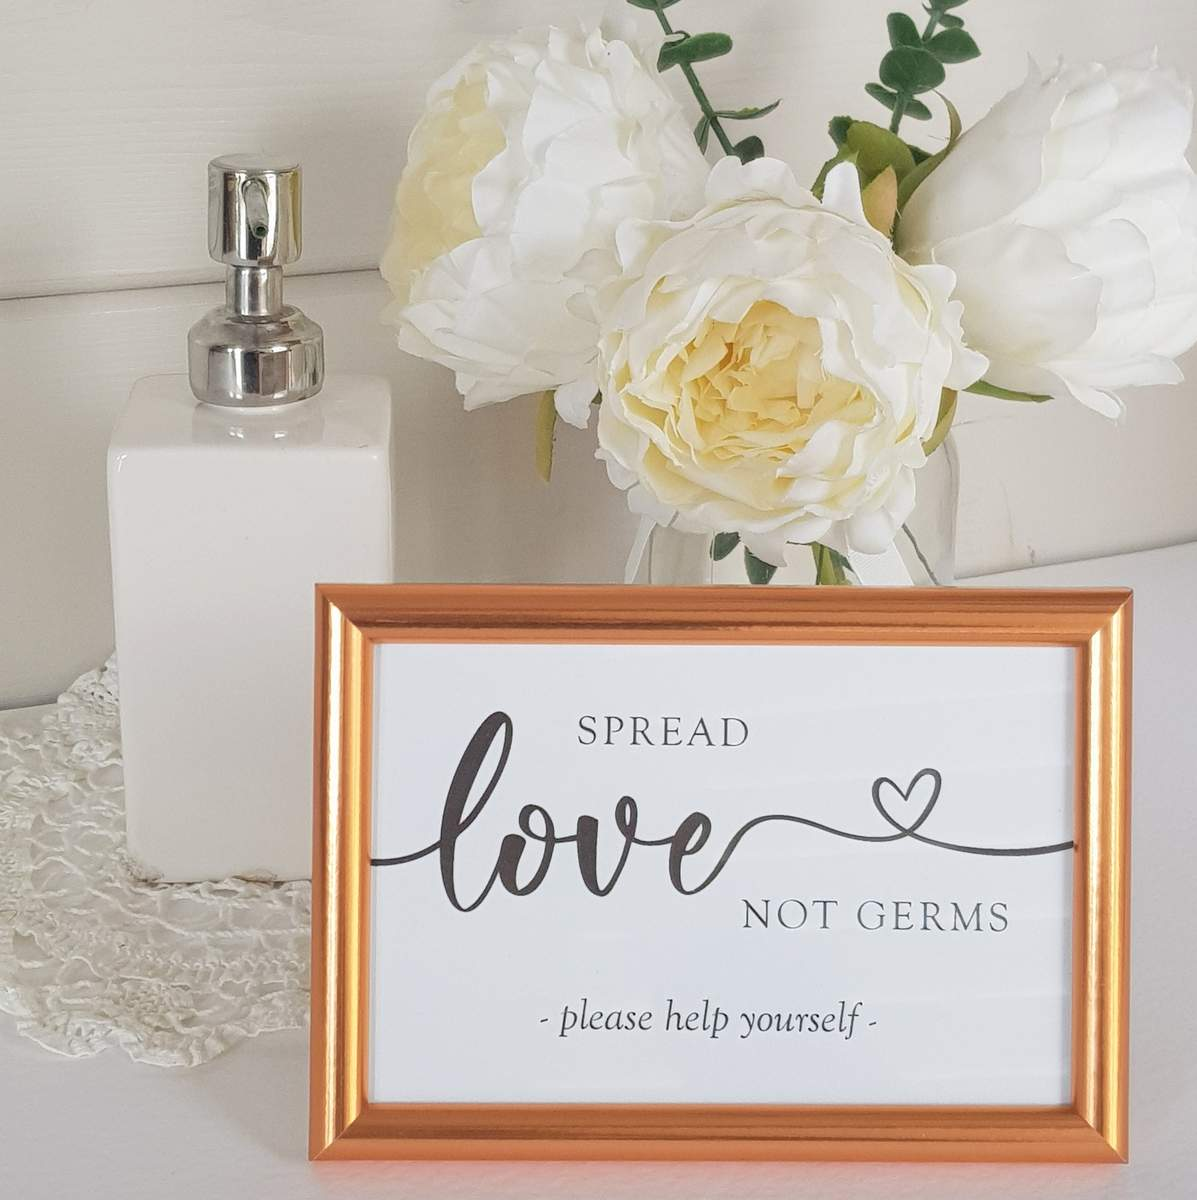 A calligraphy style wedding sign saying spread love not germs, please help yourself alongside a pump dispenser containing hand sanitiser